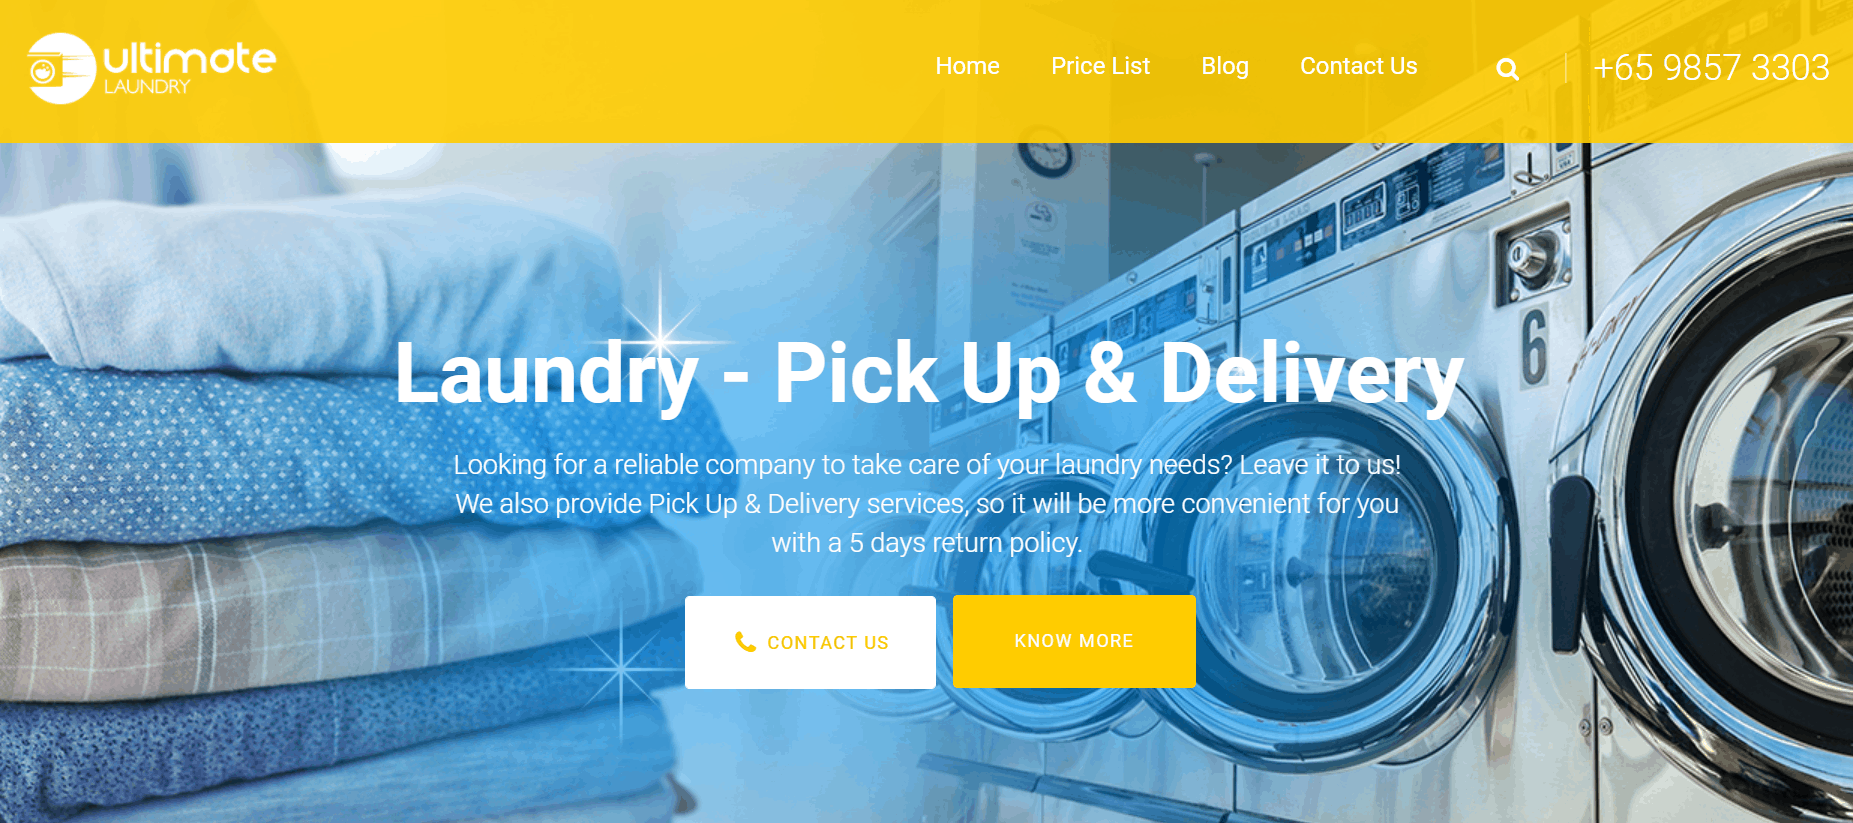 Ultimate Laundry is the 10 Best Laundry & Dry Cleaning Services in Singapore